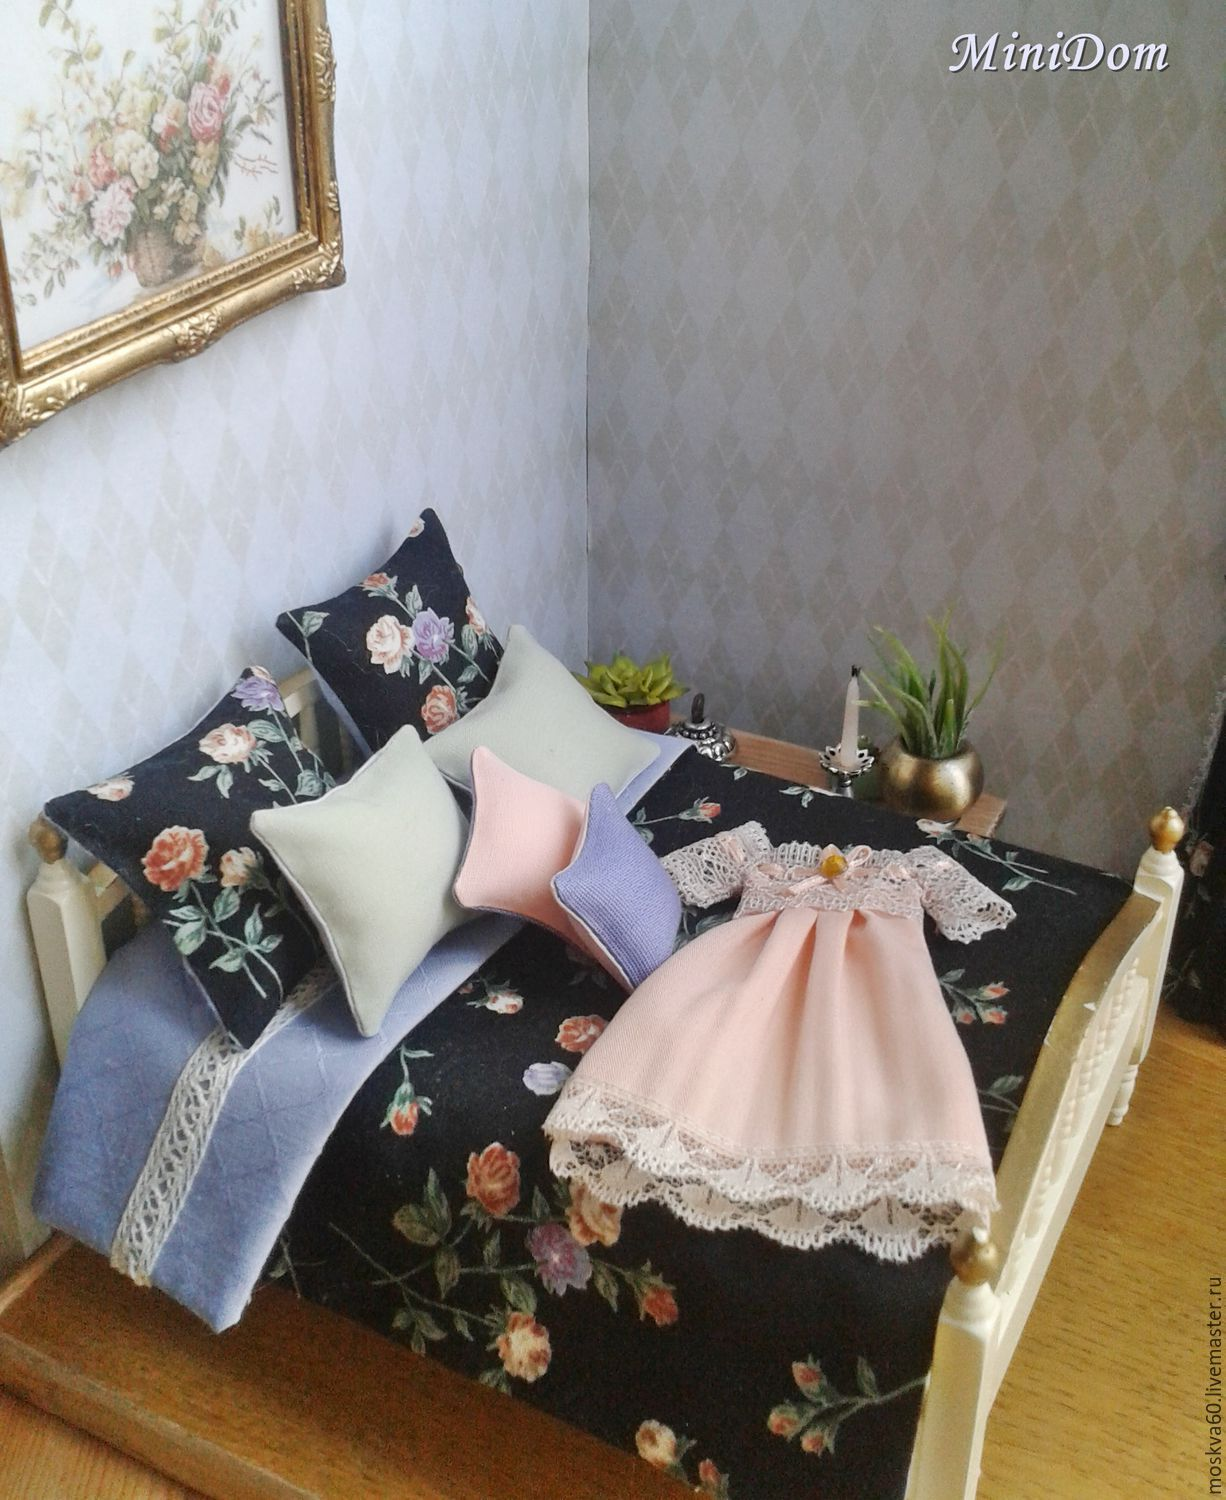 Dollhouse miniature for doll and toy collector's miniature 1: 12 accessories furniture food doll food doll furniture accessories for doll house the doll house miniature handmade